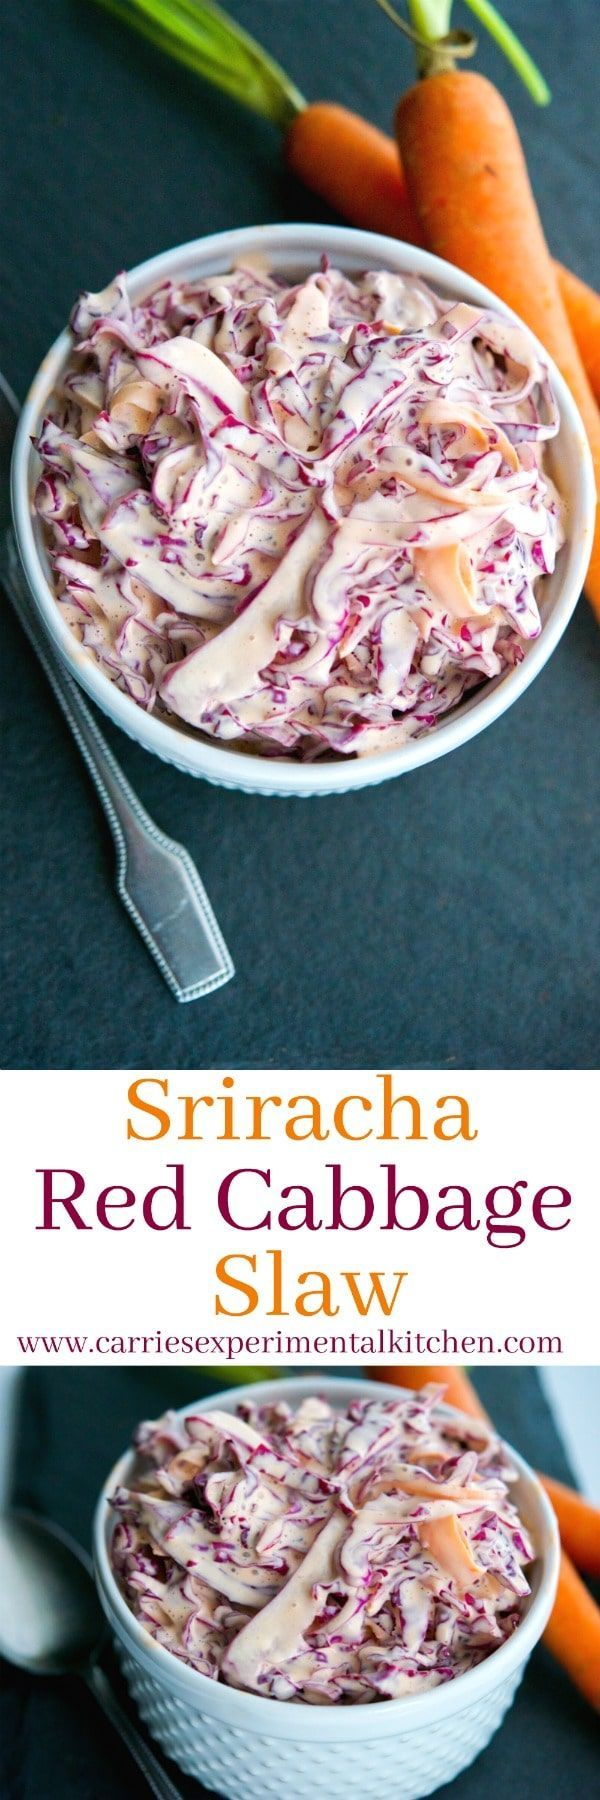 This Sriracha Red Cabbage Slaw is deliciously creamy with a little bit of heat. The perfect addition to your summer salad rotation.